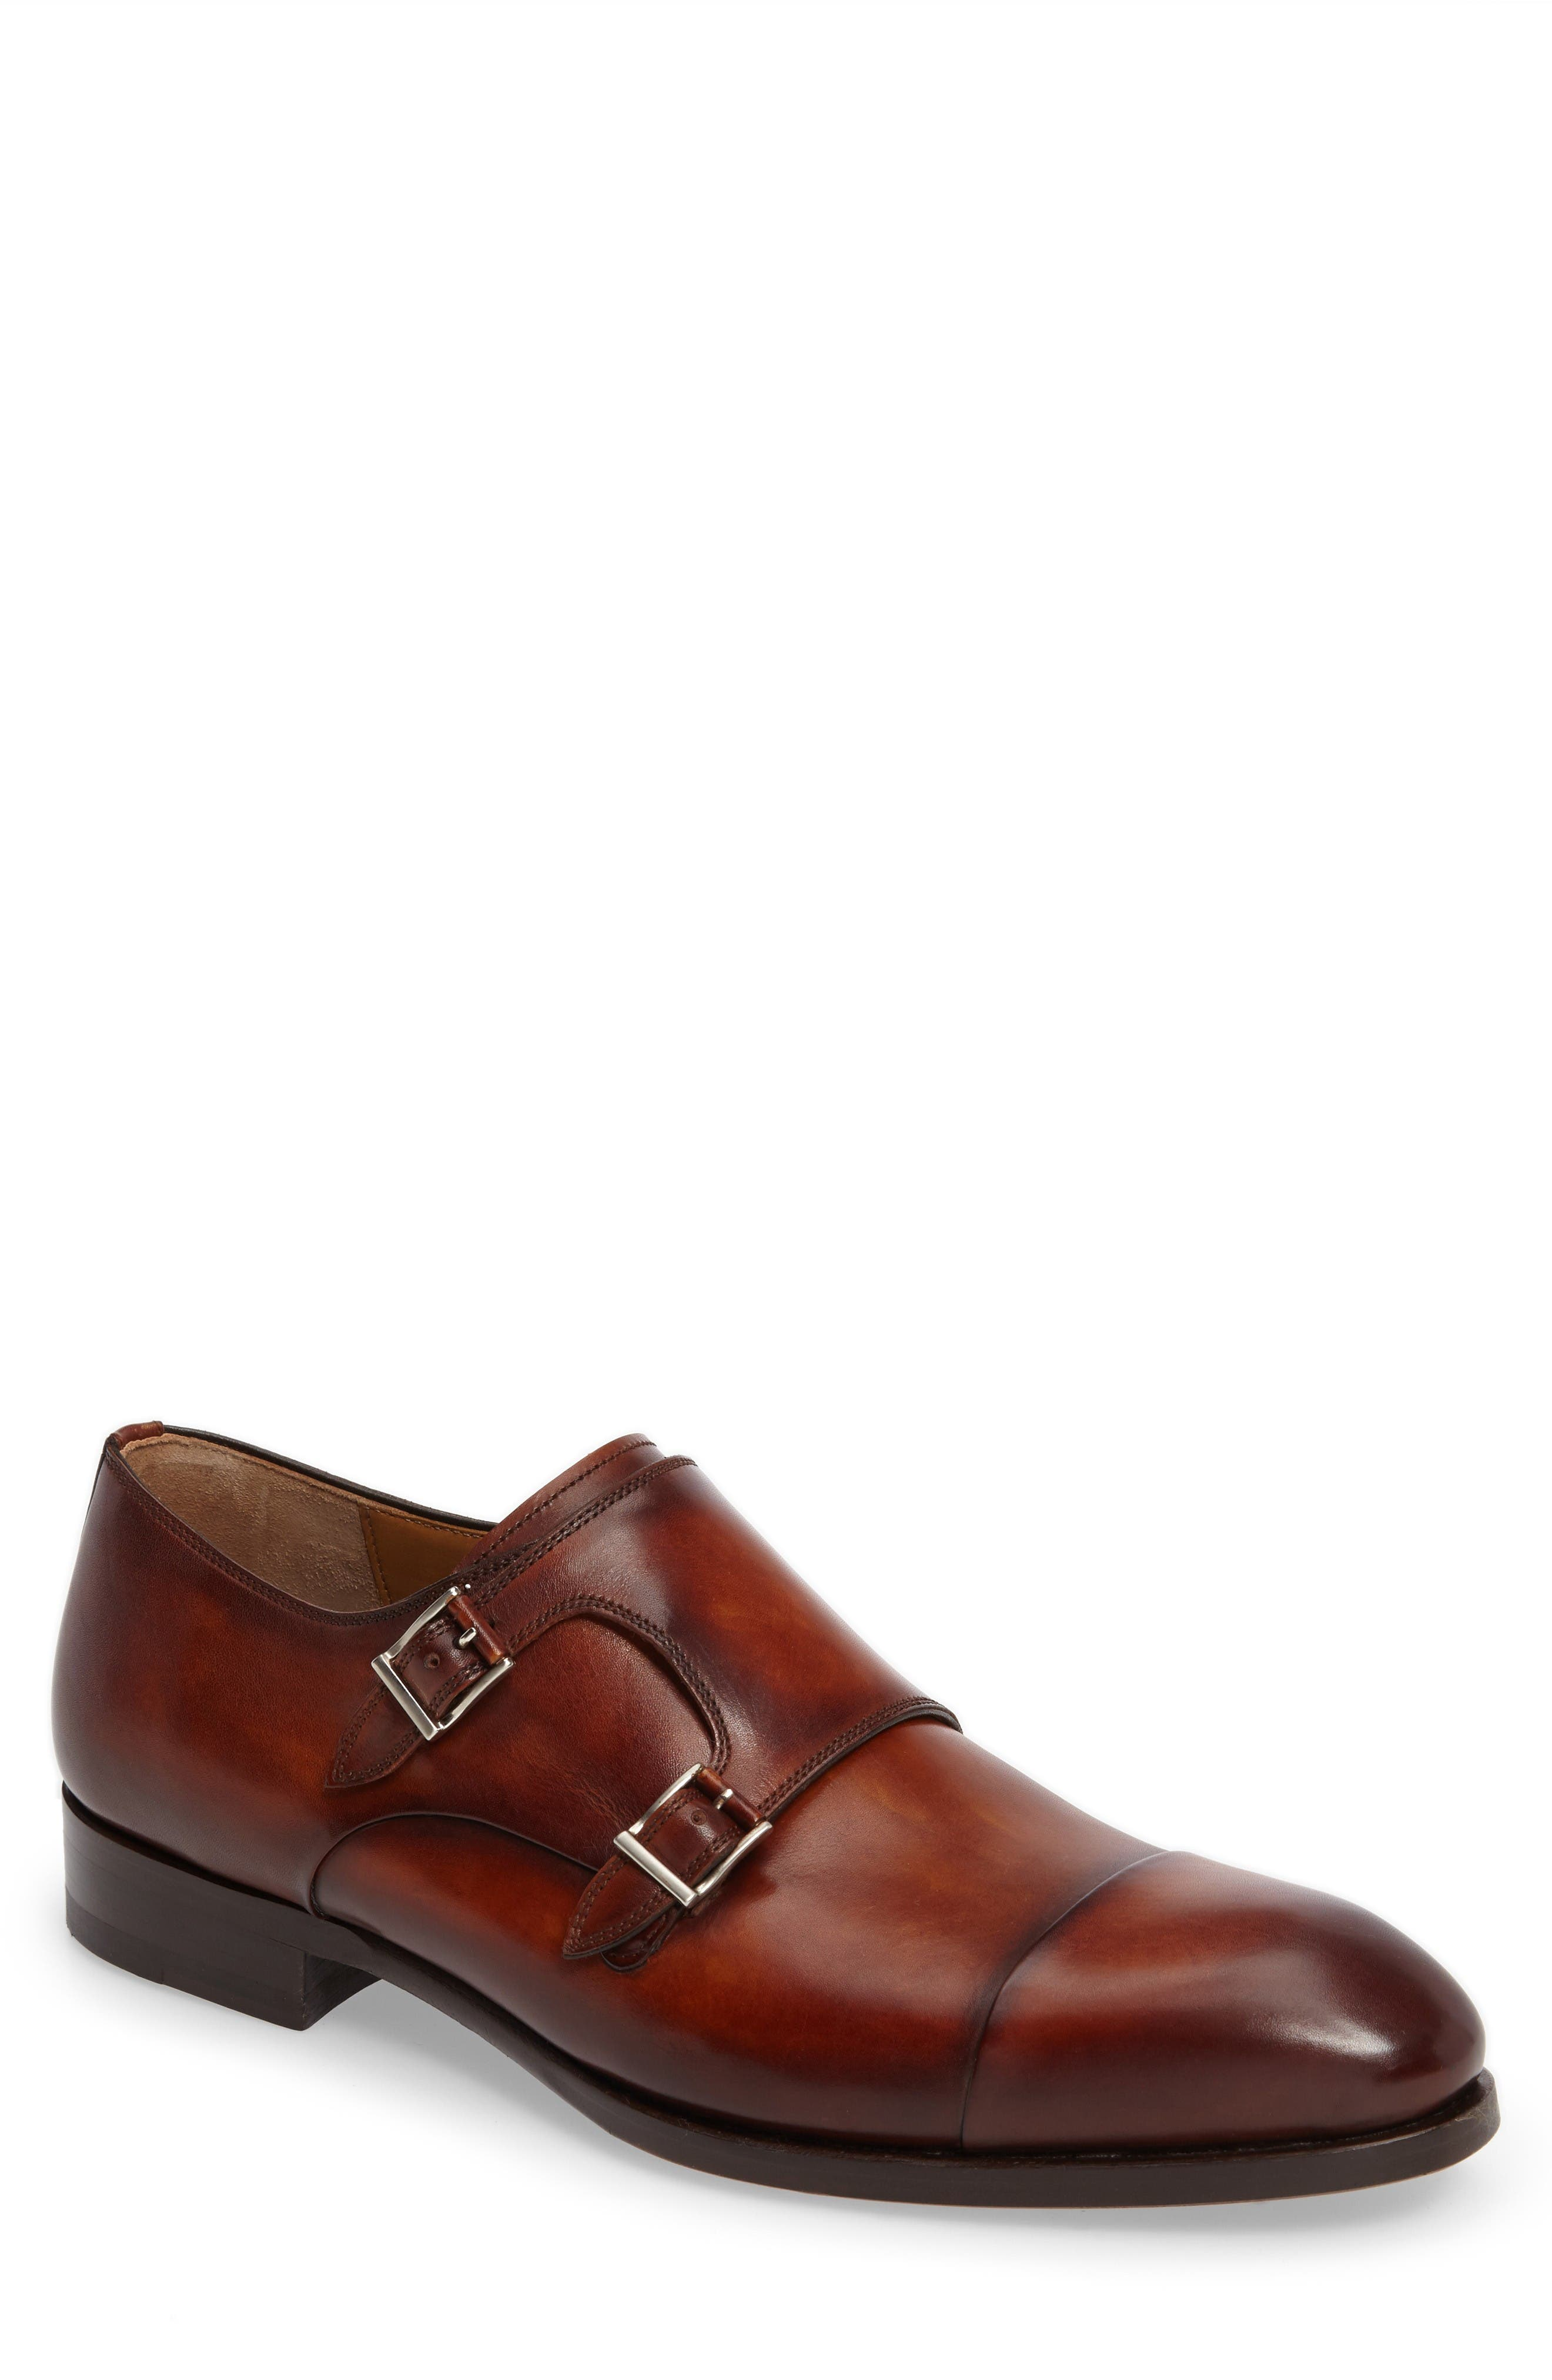 Magnanni Louie Double Monk Strap Shoe